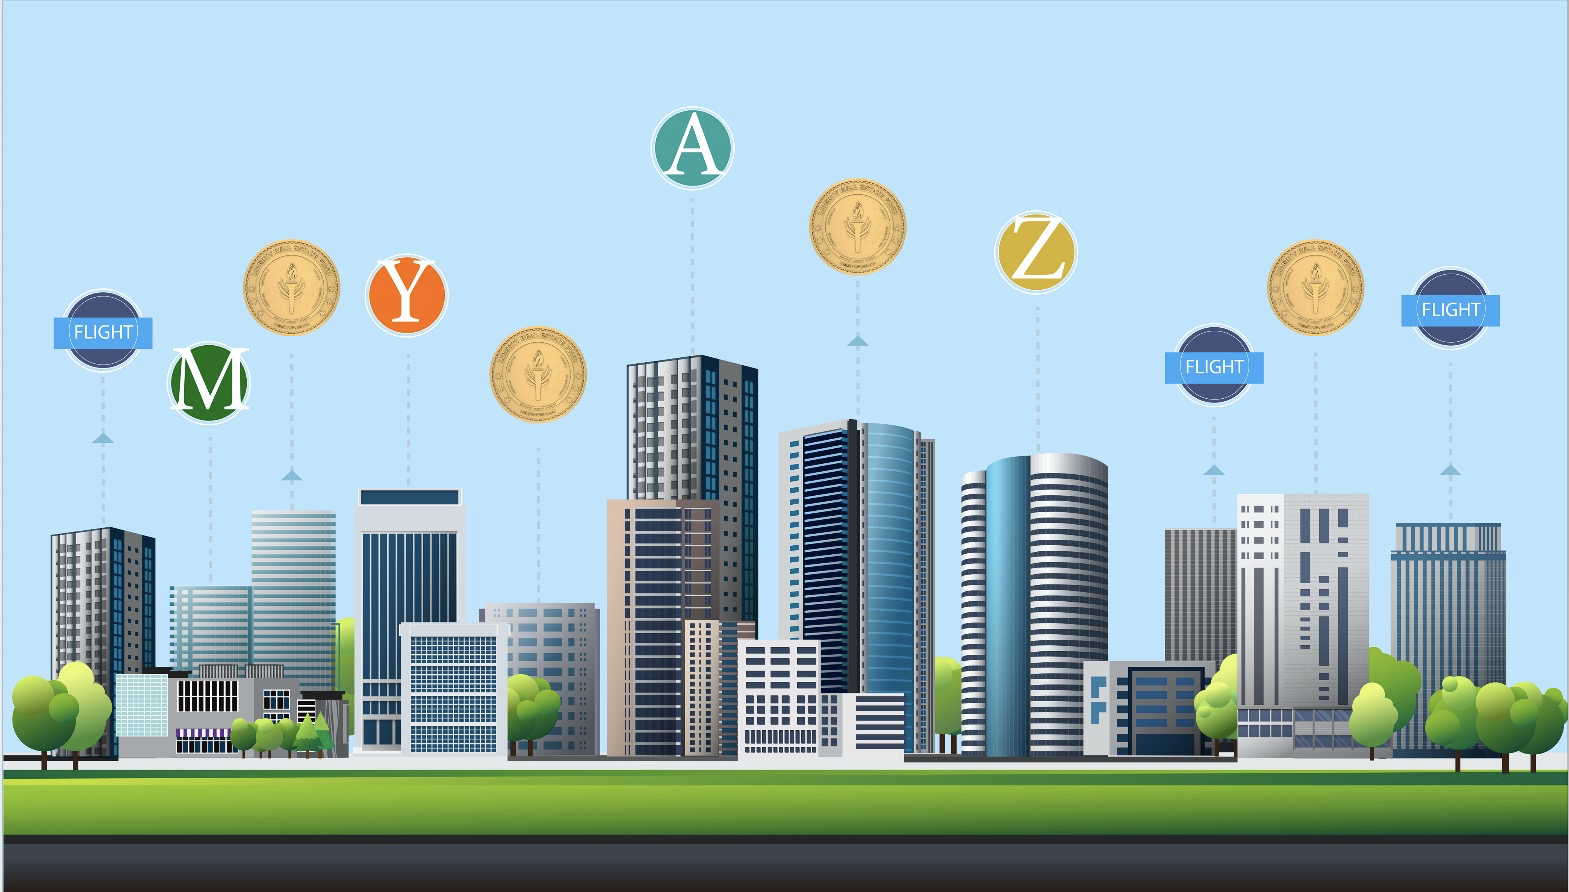 Commercial real estate buildings tokenized with security token symbols connected in the air above them.